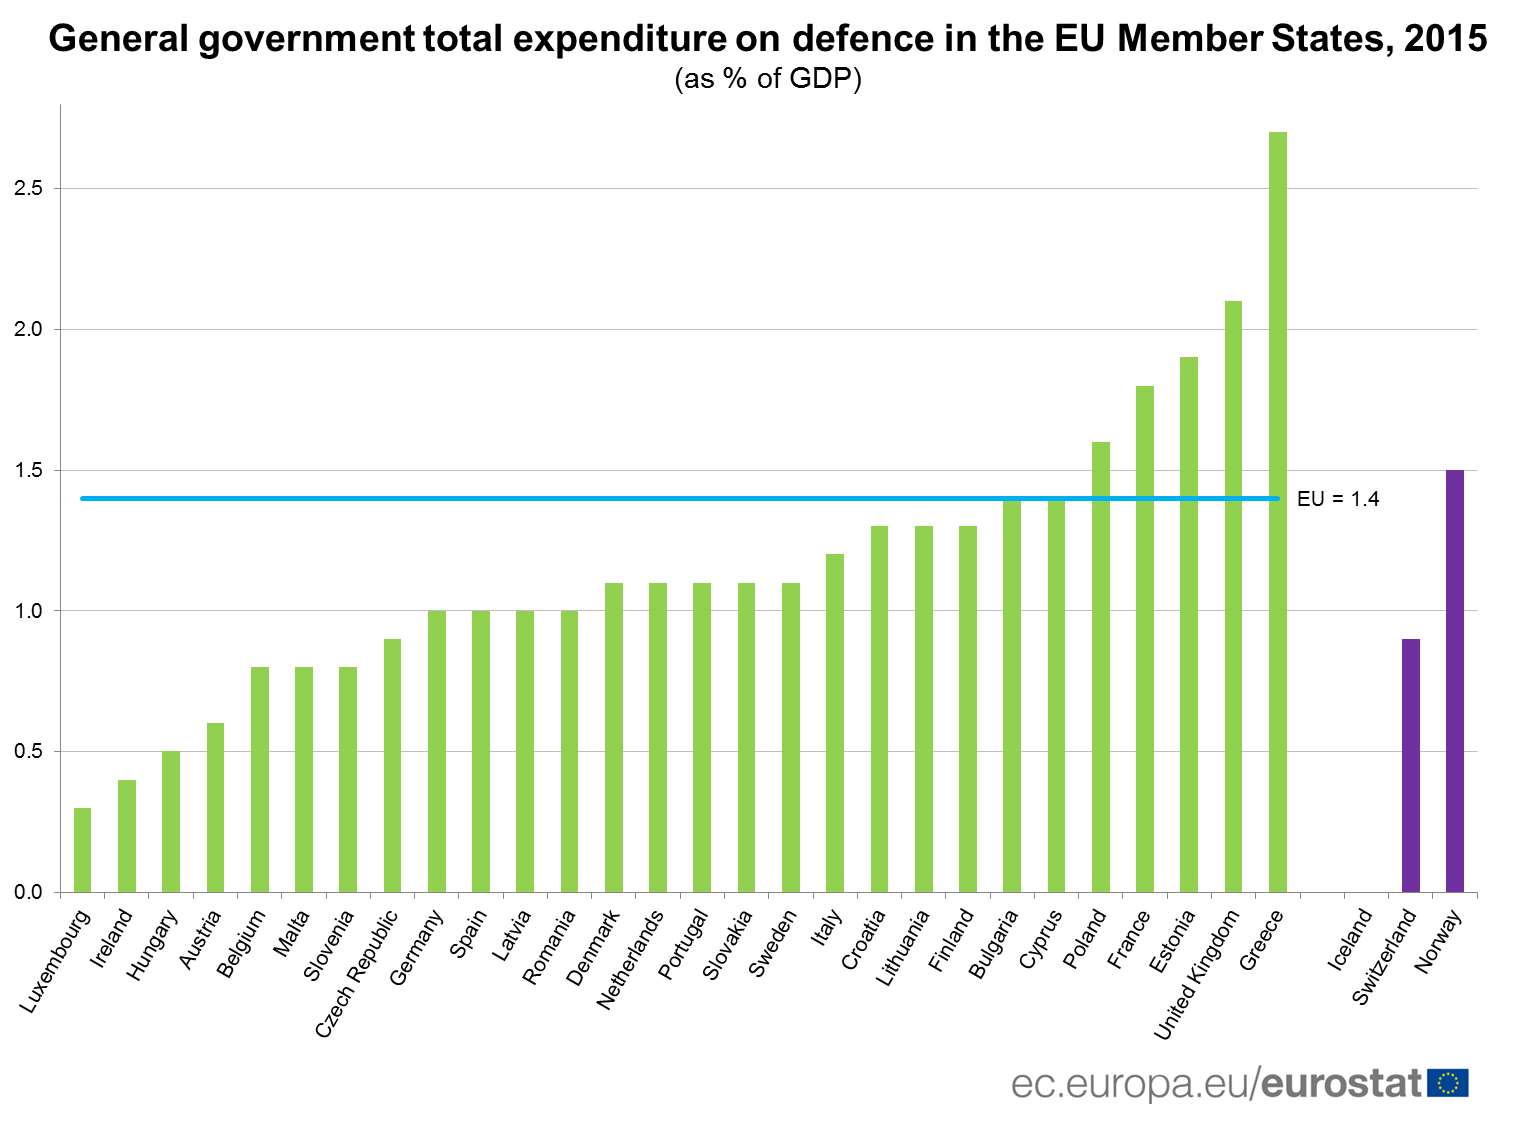 General government total expenditure on defence in the EU, 2015